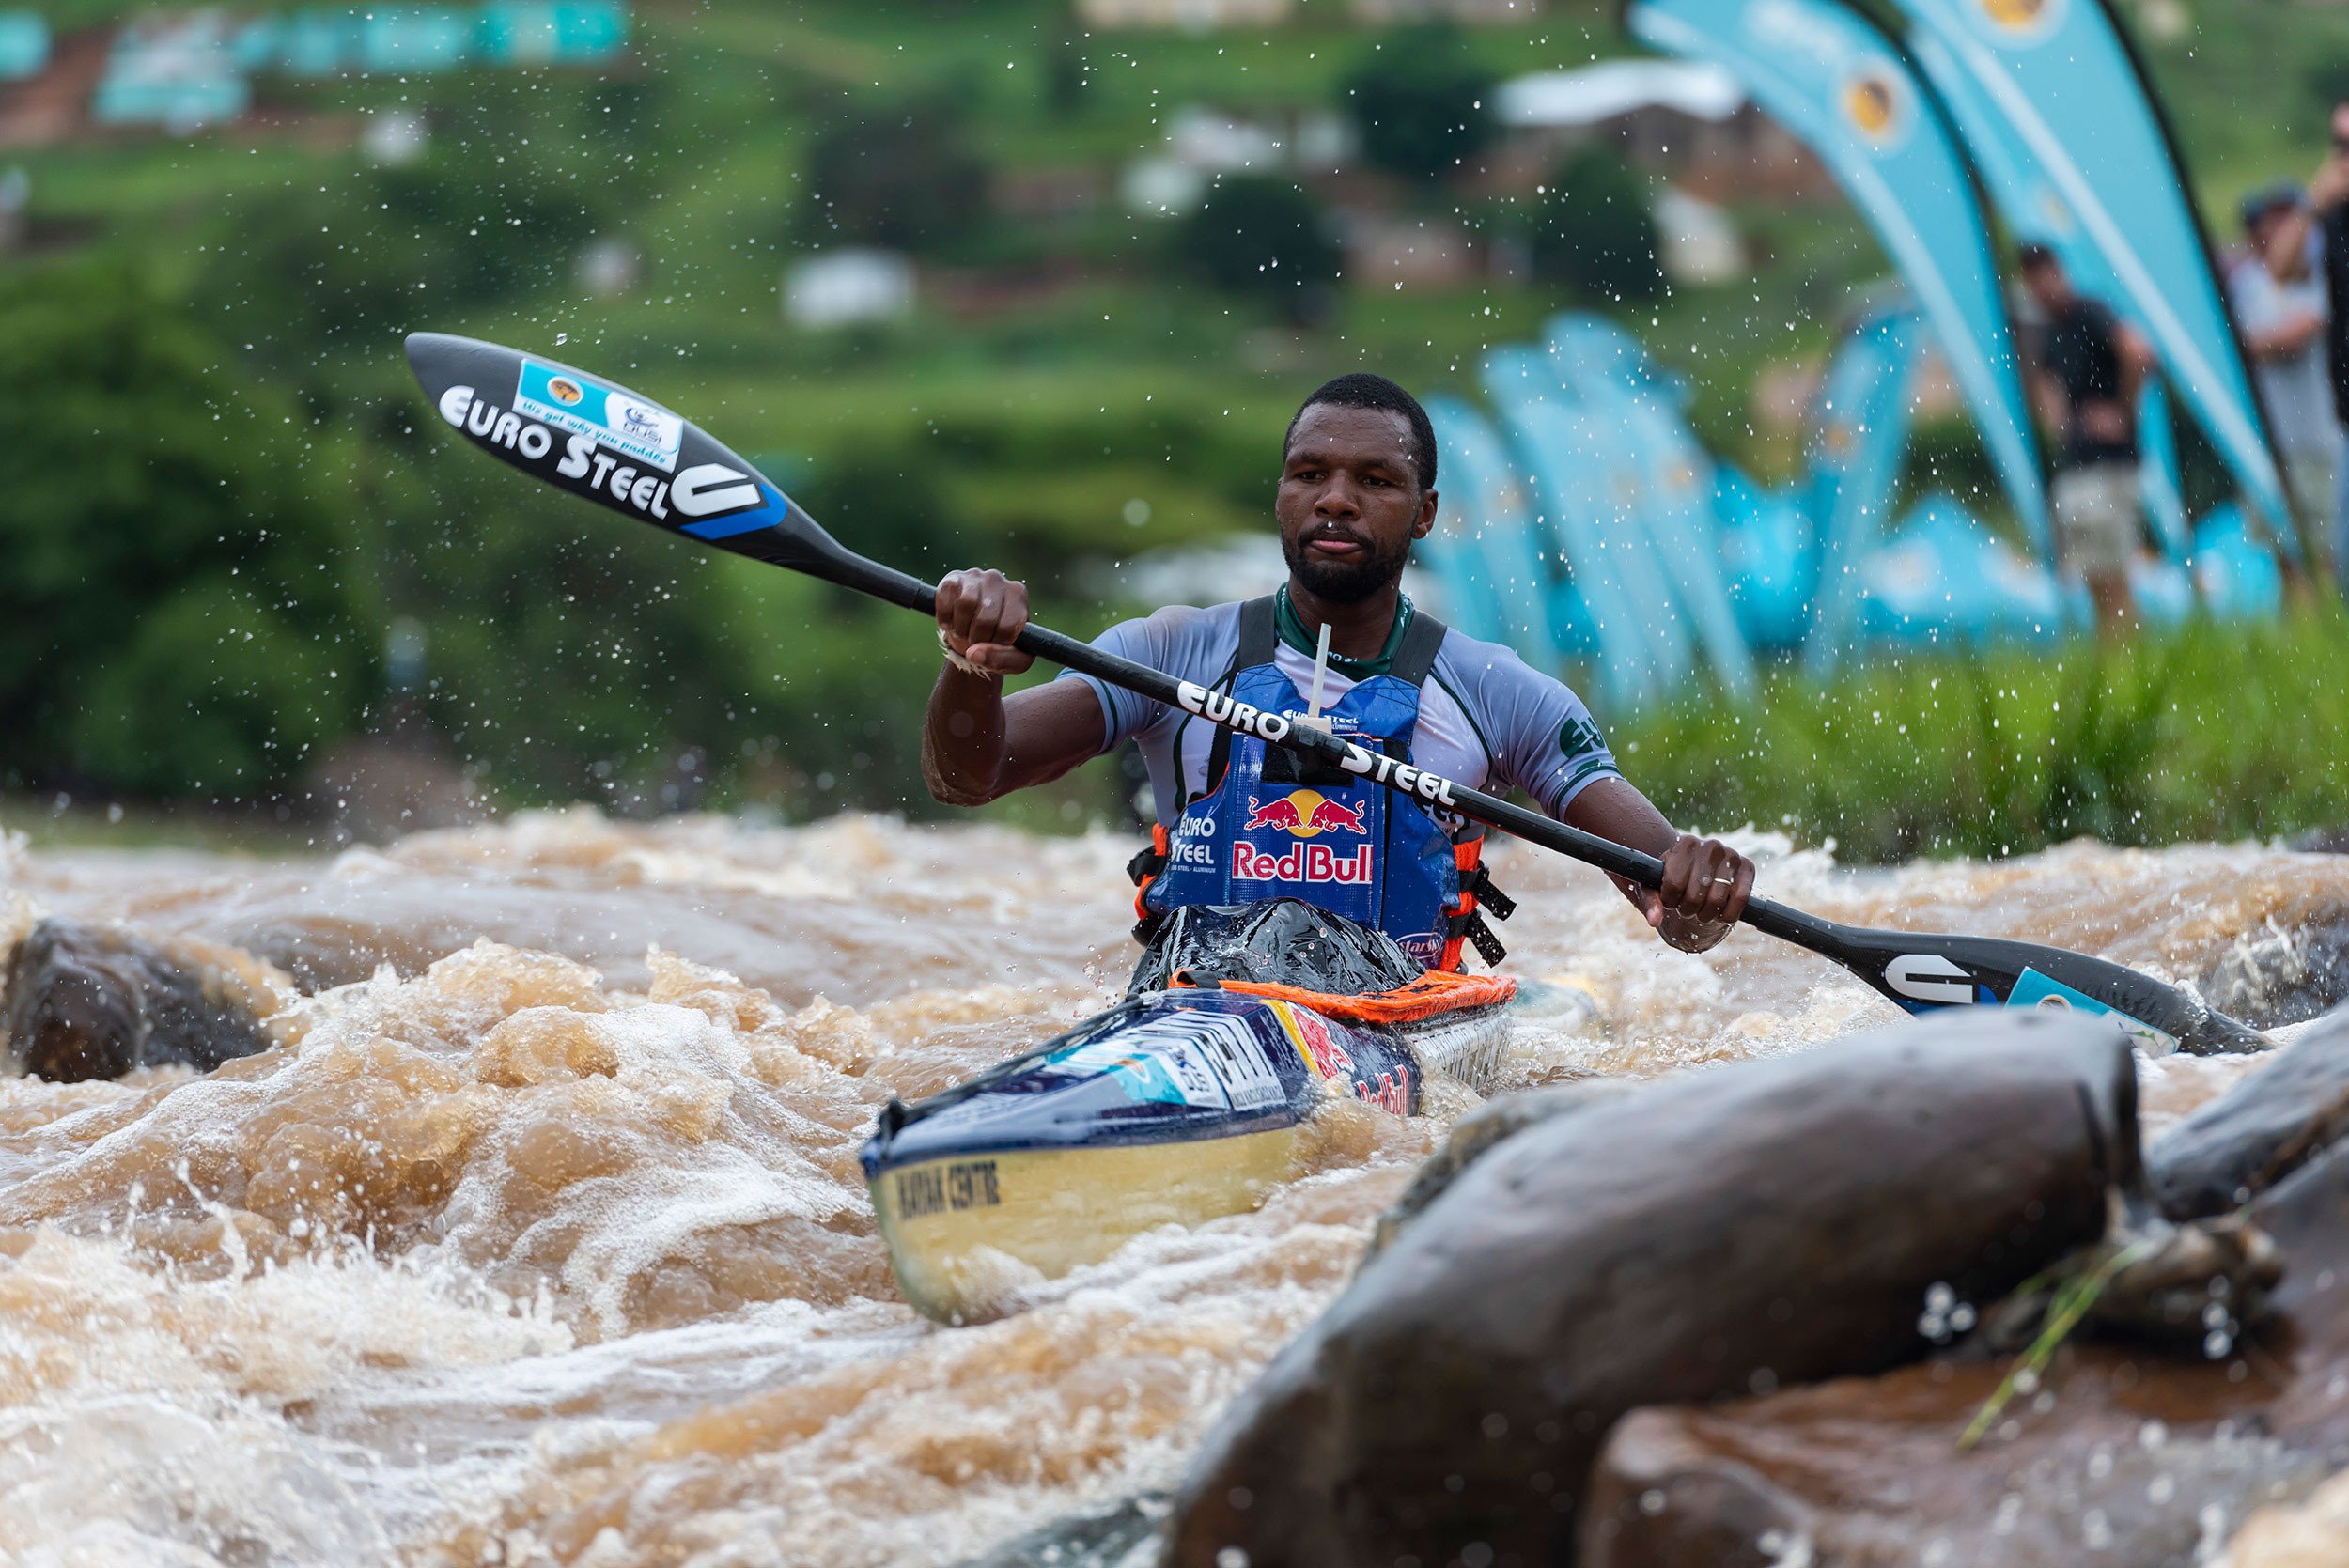 8 March 2019: Sbonelo Khwela, who hails from Shongweni, not only wants to give the valley its first winner but also wants to become the first black man to win the Dusi. (Photograph by Anthony Grote/Gameplan Media)